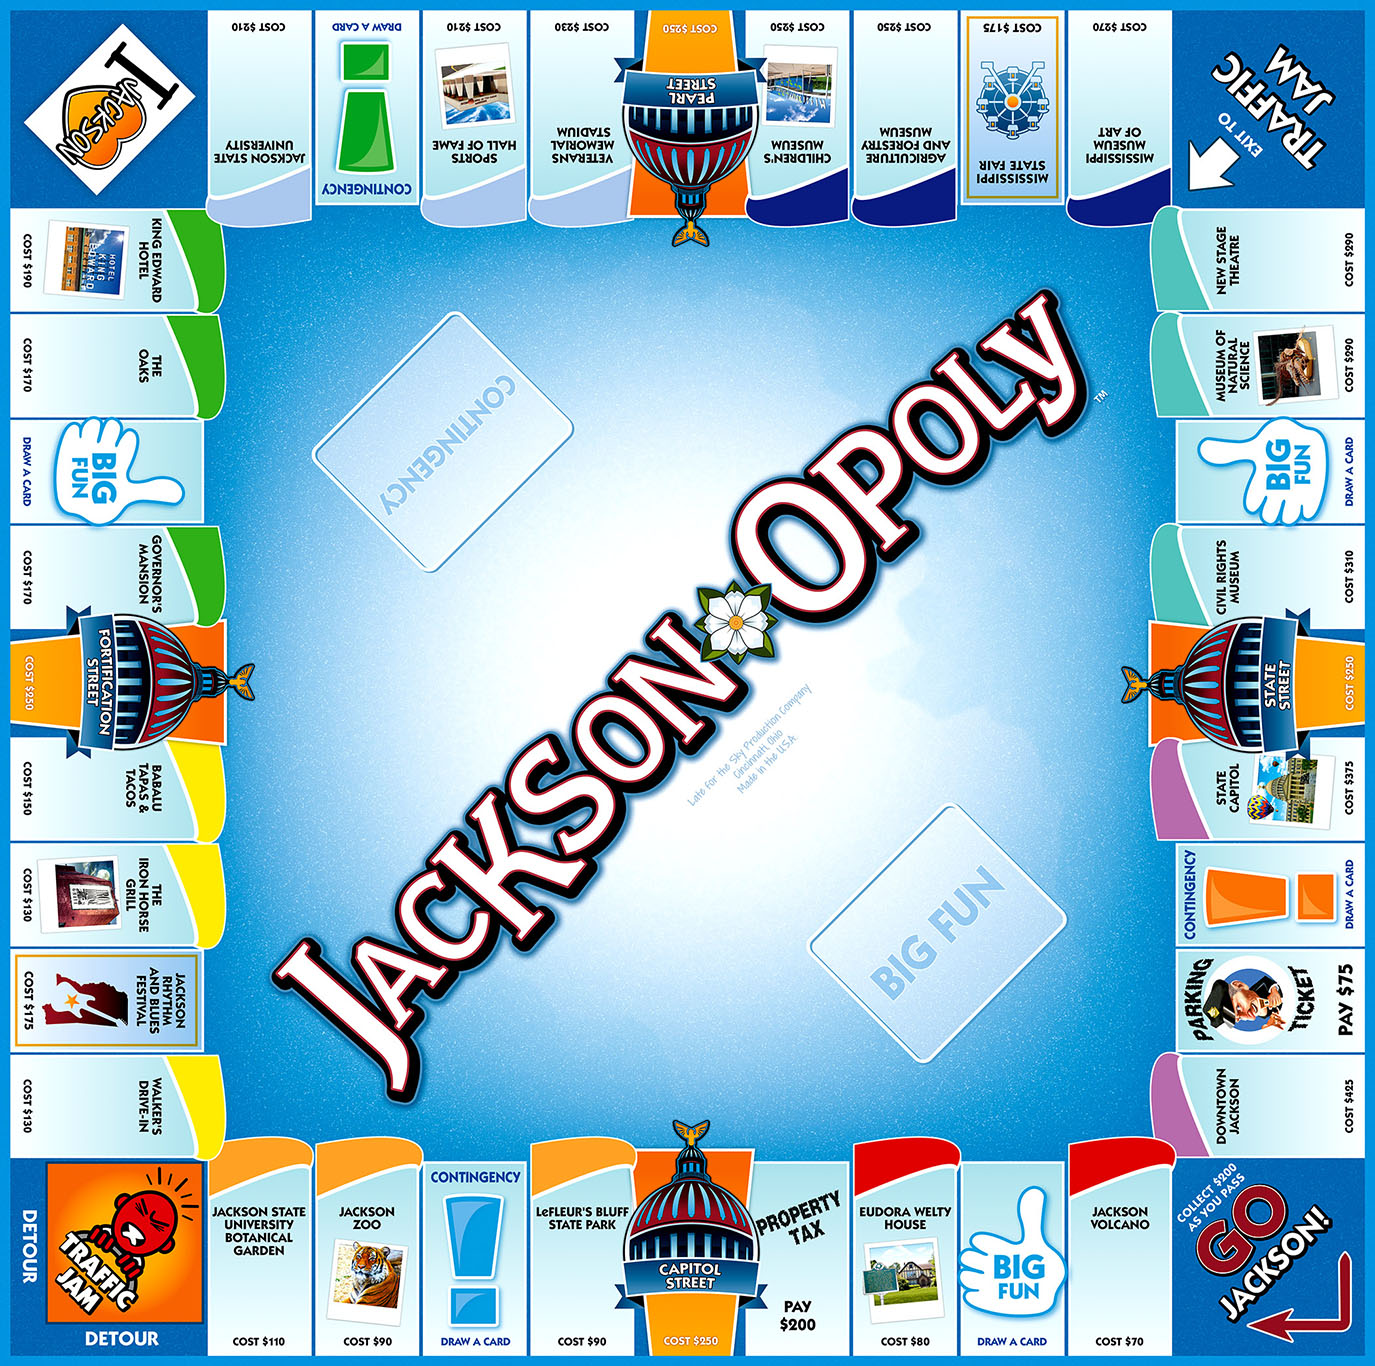 JACKSON-OPOLY Board Game